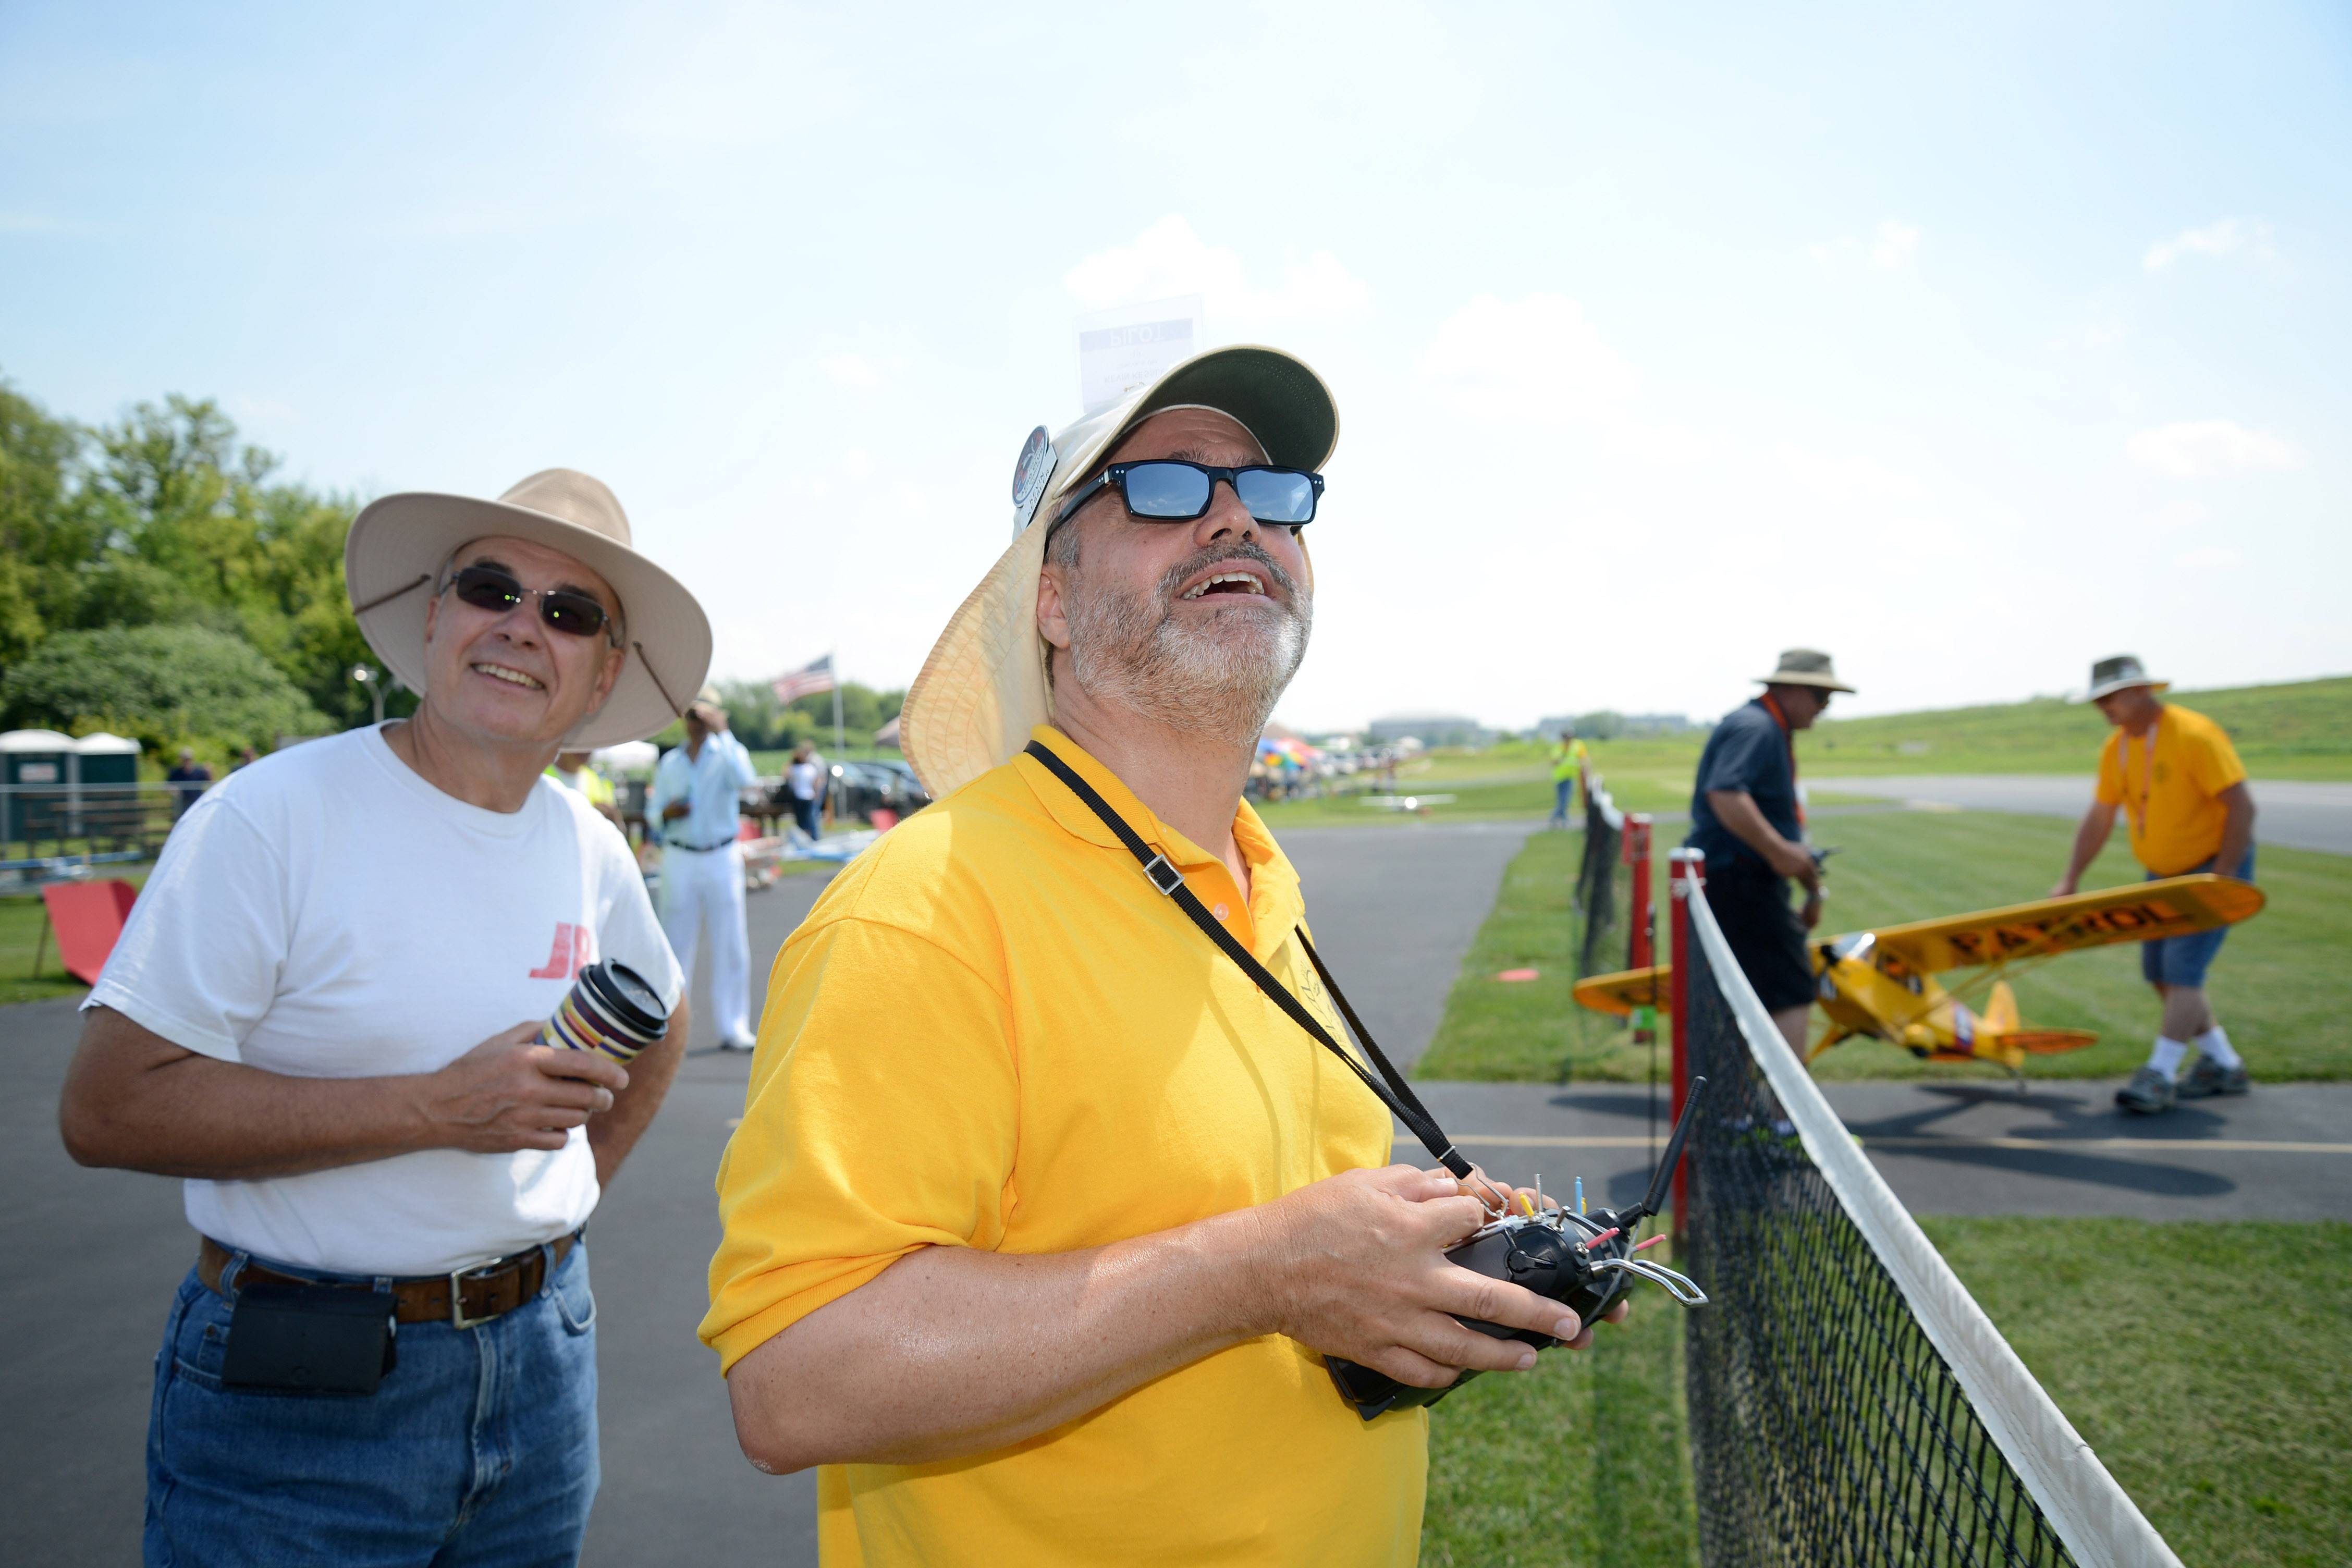 Kevin Kessler of Geneva flies his Piper Super Cub one-quarter scale plane as Rich Gabrys of Elgin acts as his spotter at the Fox Valley Aero Club's Windy City Warbird and Classics model airplane show Friday in St. Charles. Kessler owns about 15 planes has been a member of the club for five years.